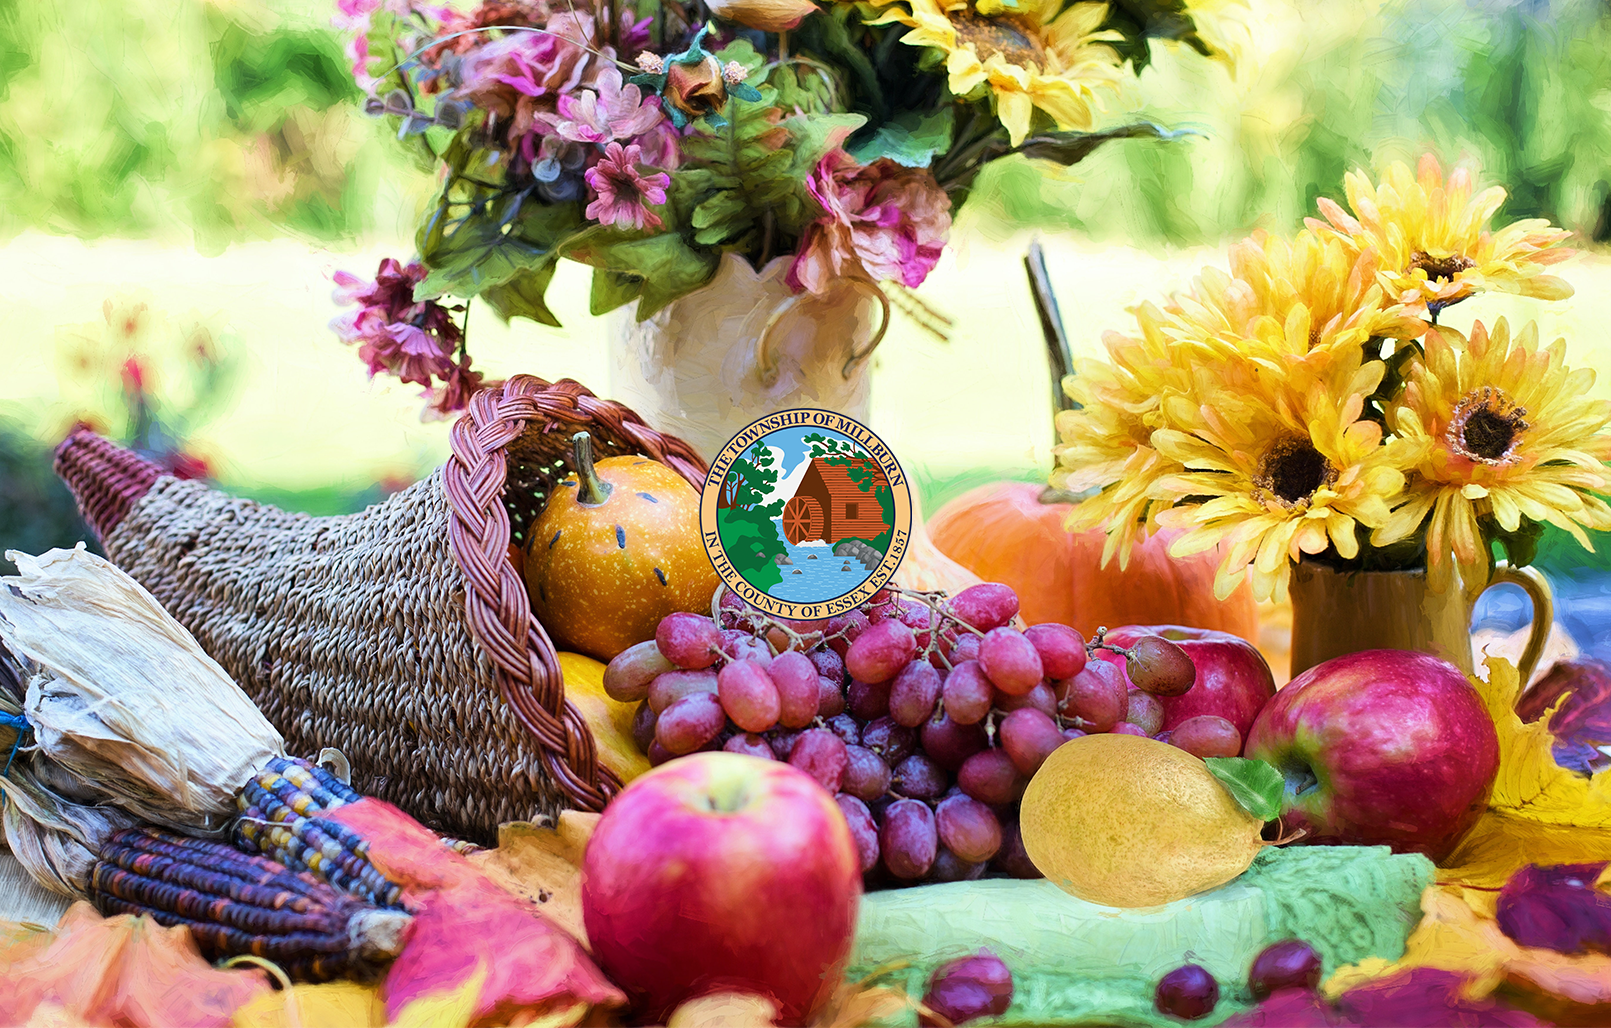 Photograph of Thanksgiving table setting